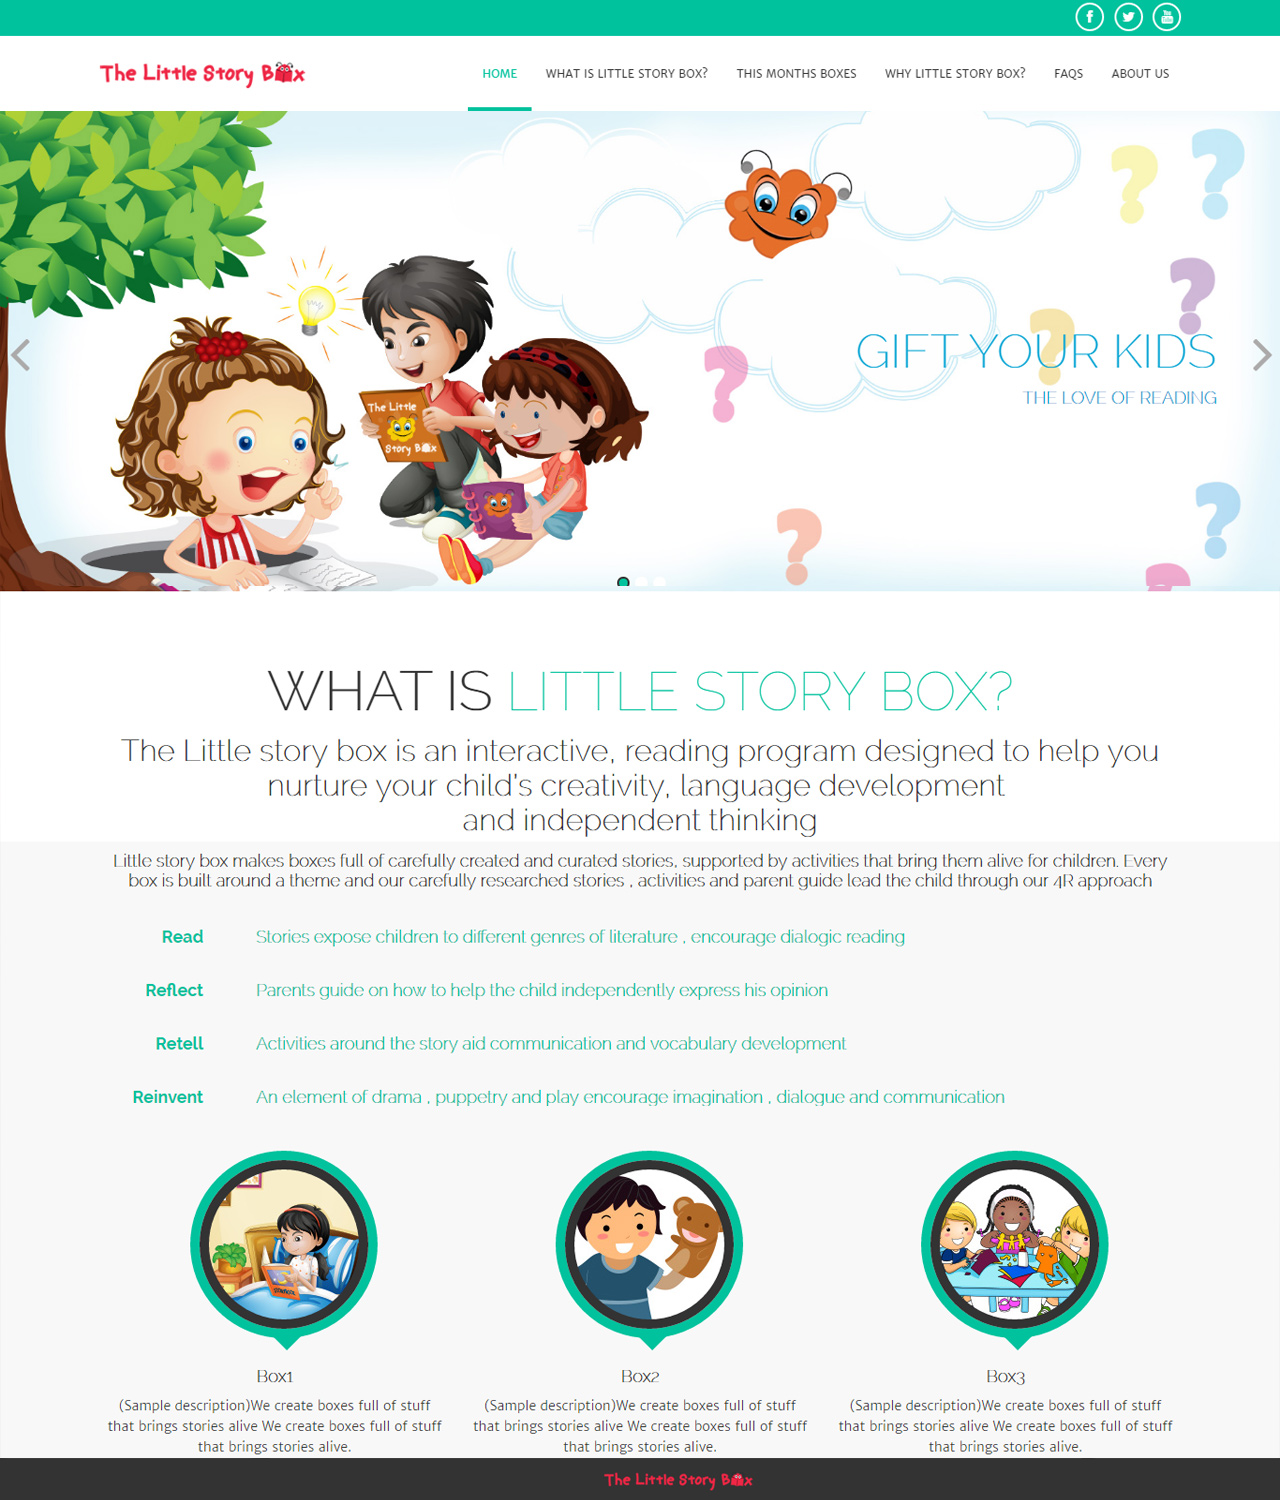 The Little story box is an interactive, reading program for kids